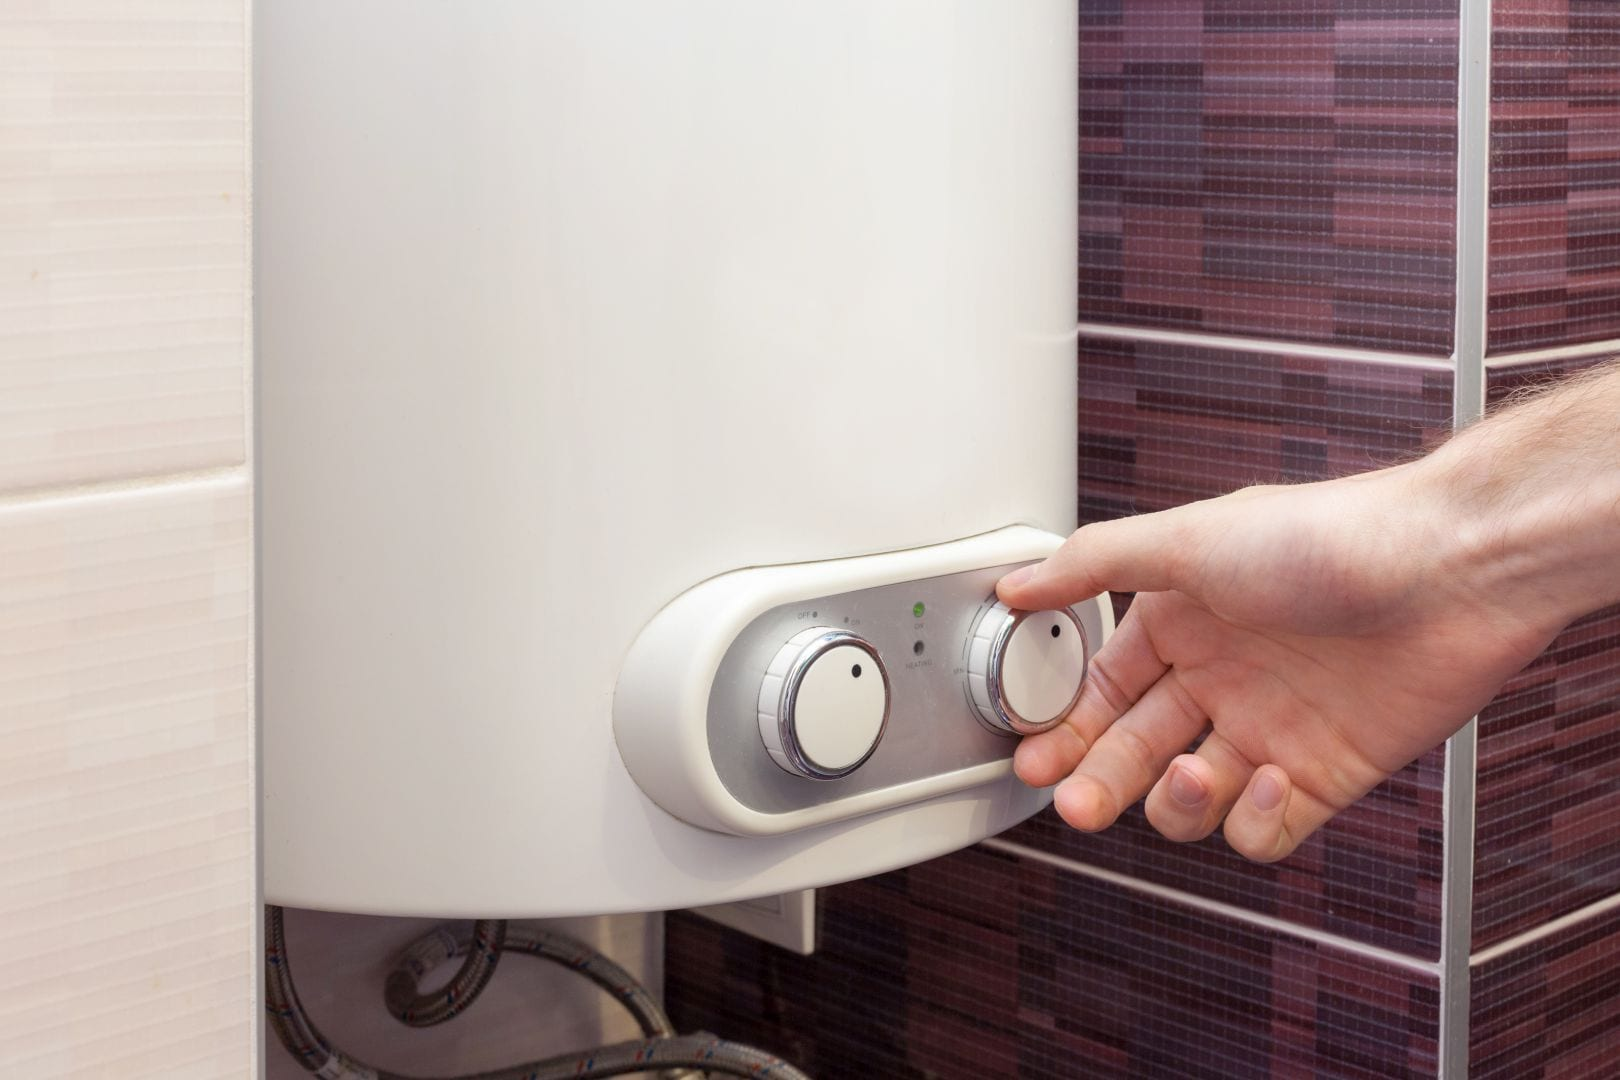 Residential Heating & Repair Services in Illinois